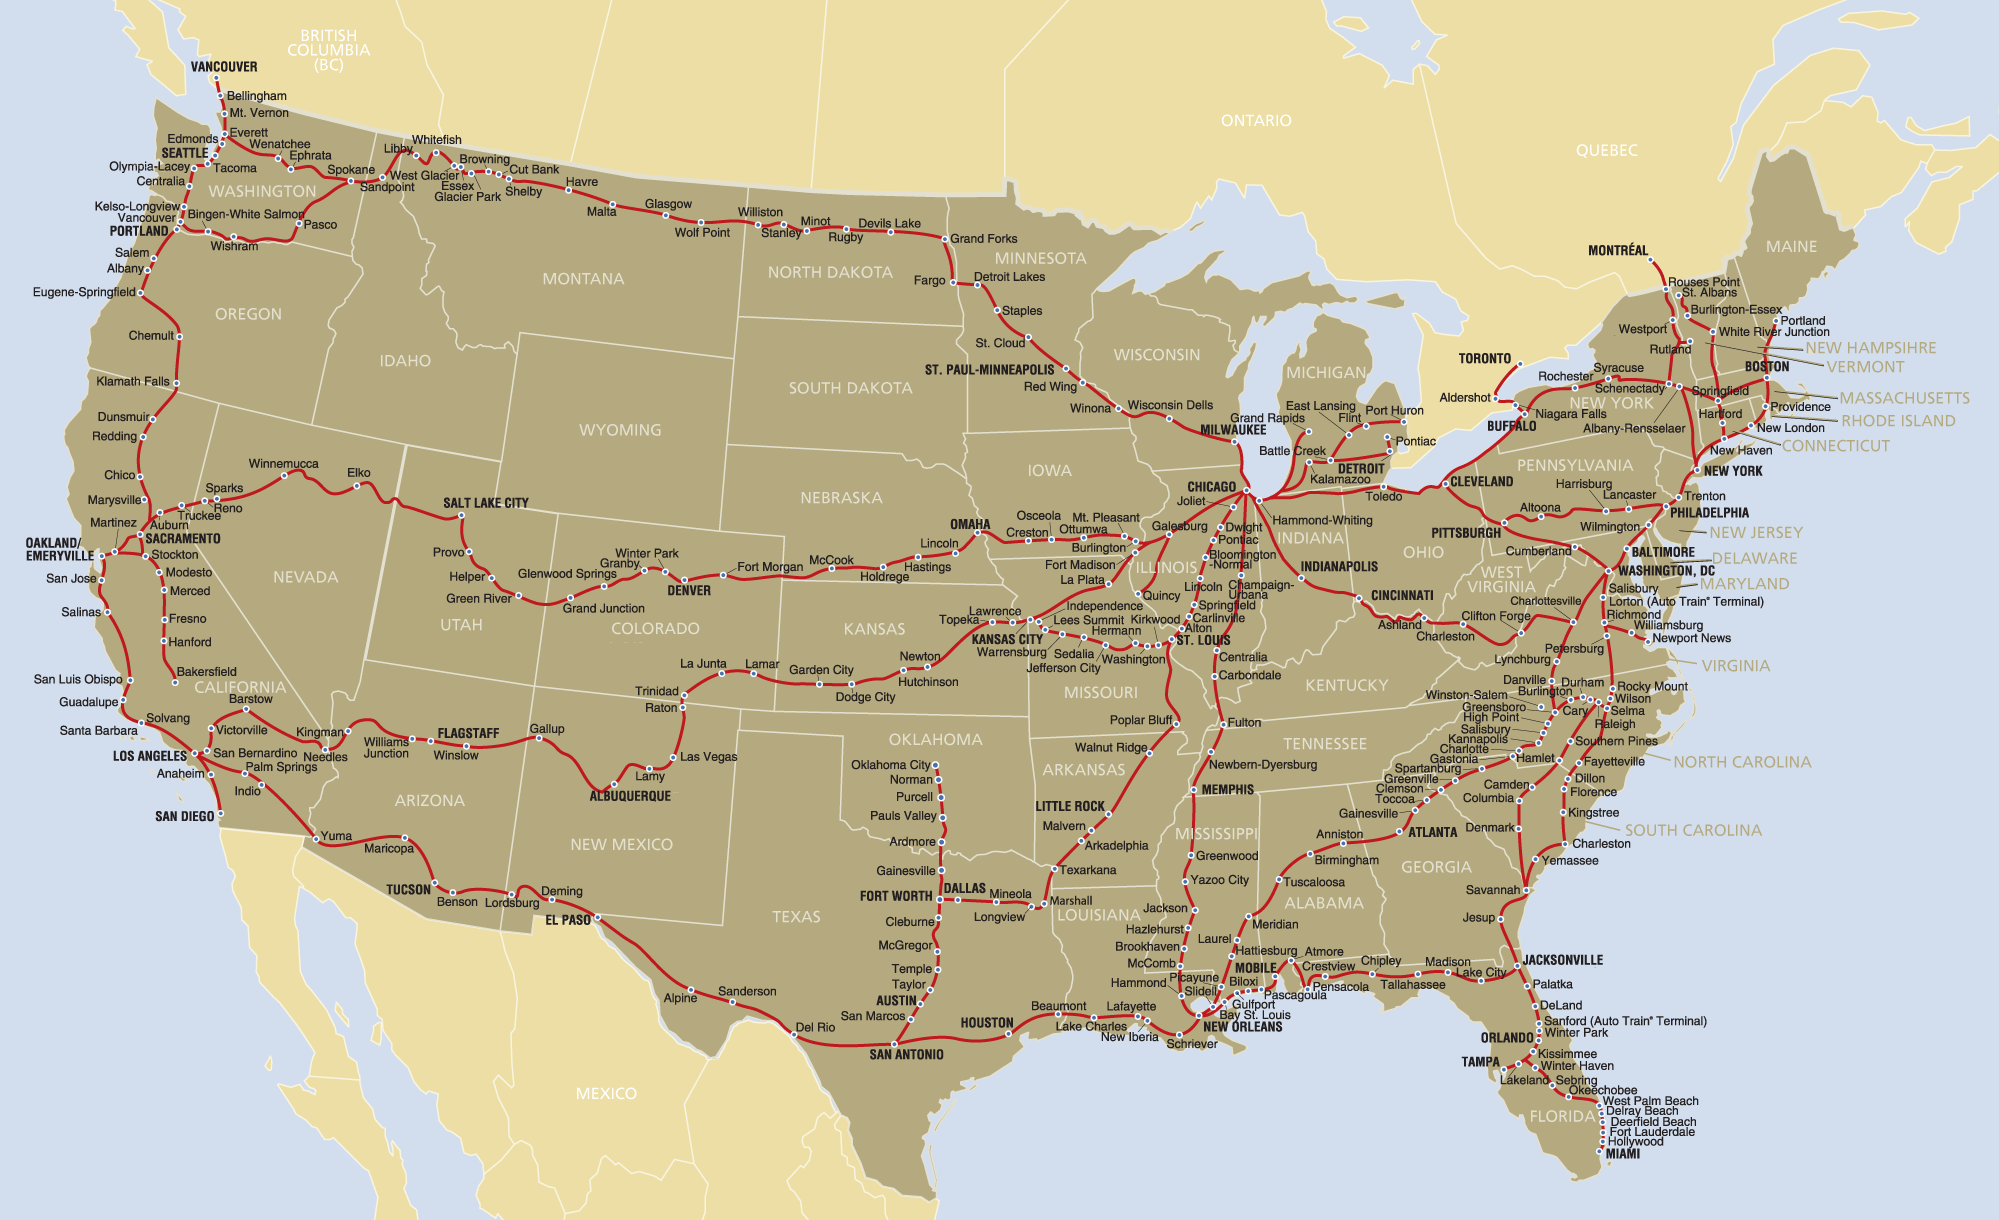 Amtrak Route Map Usa Amtrak Route Map • Mapsof.net Amtrak Route Map Usa